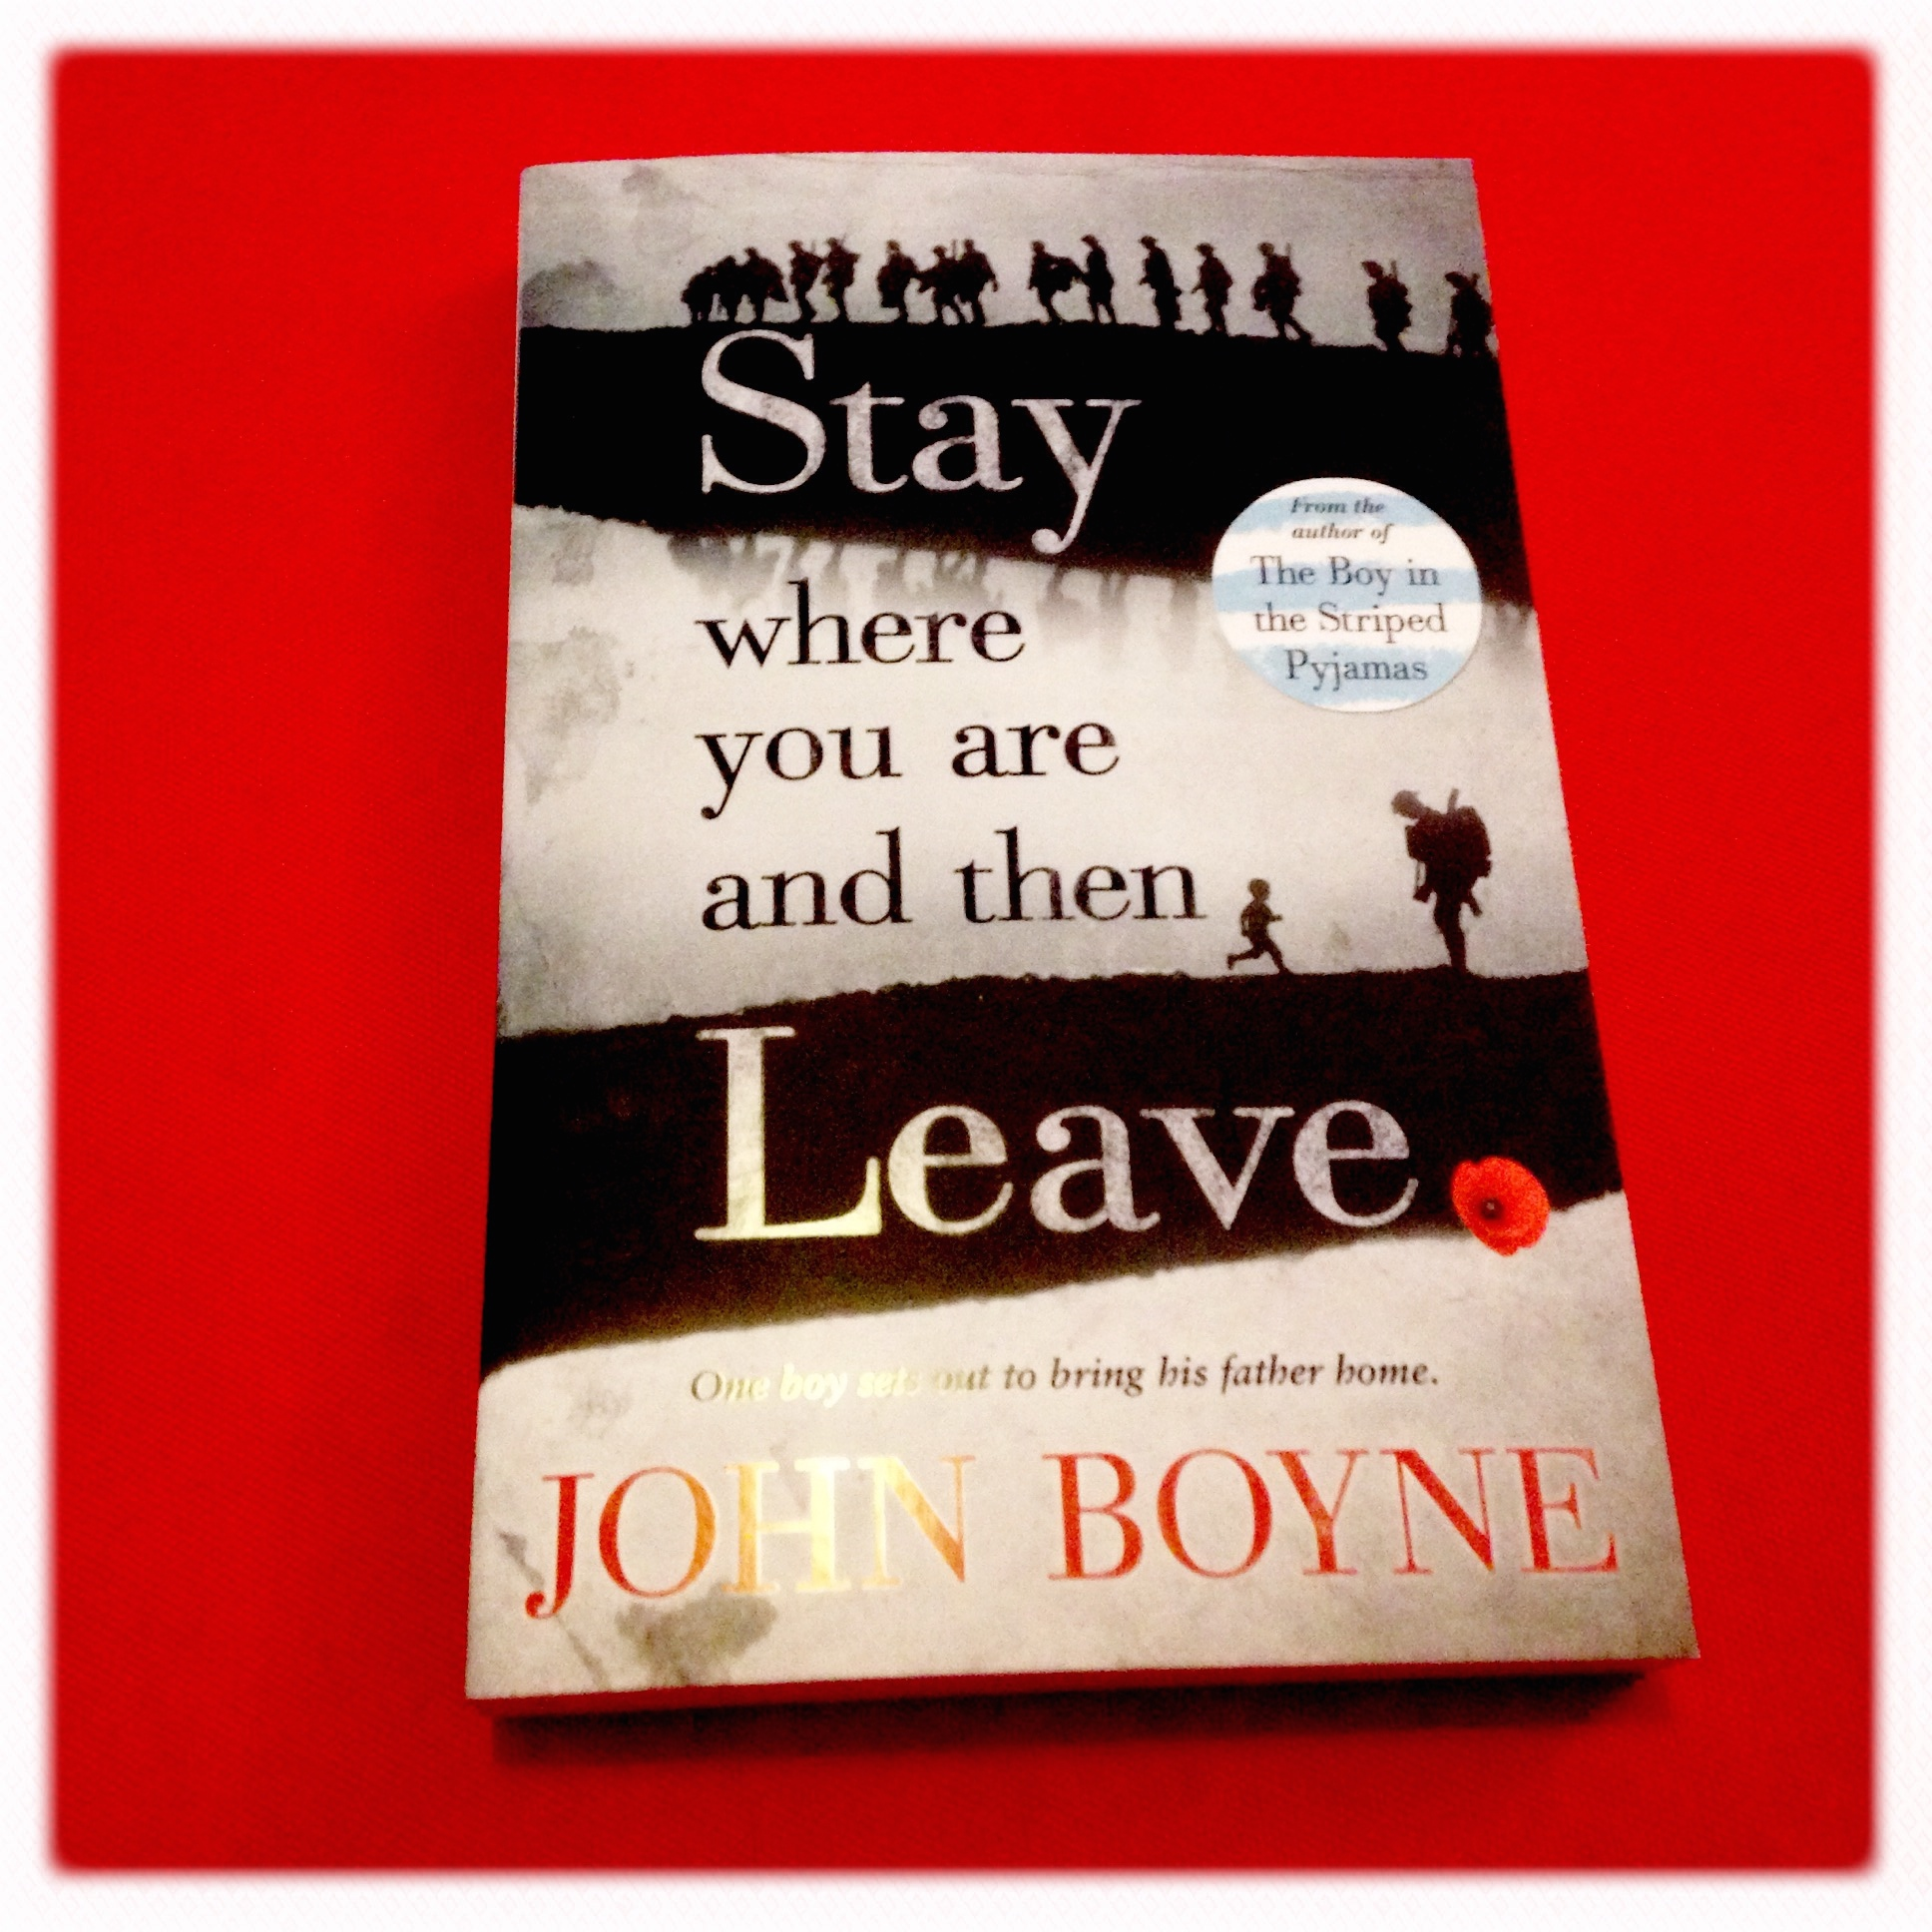 What I'll be reading before #LightsOut - Stay Where You Are And Then Leave by John Boyne